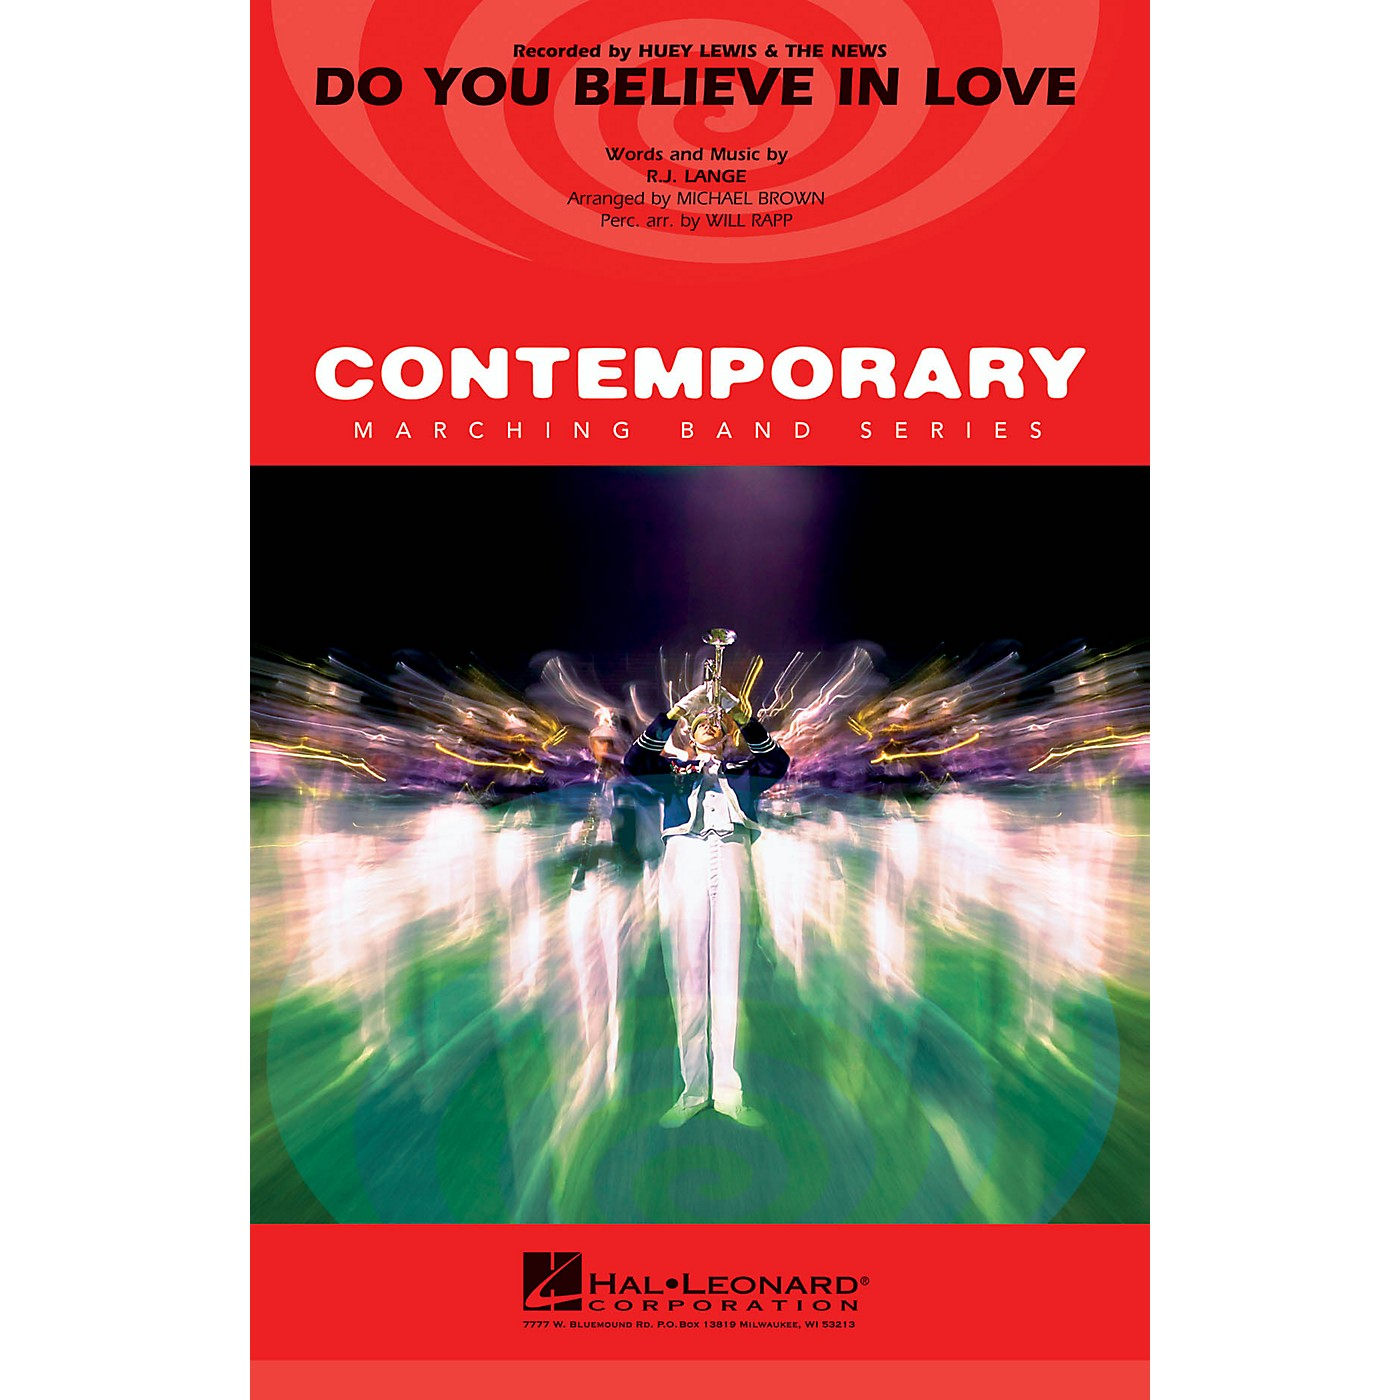 Hal Leonard Do You Believe in Love Marching Band Level 3-4 by Huey Lewis and the News Arranged by Michael Brown thumbnail